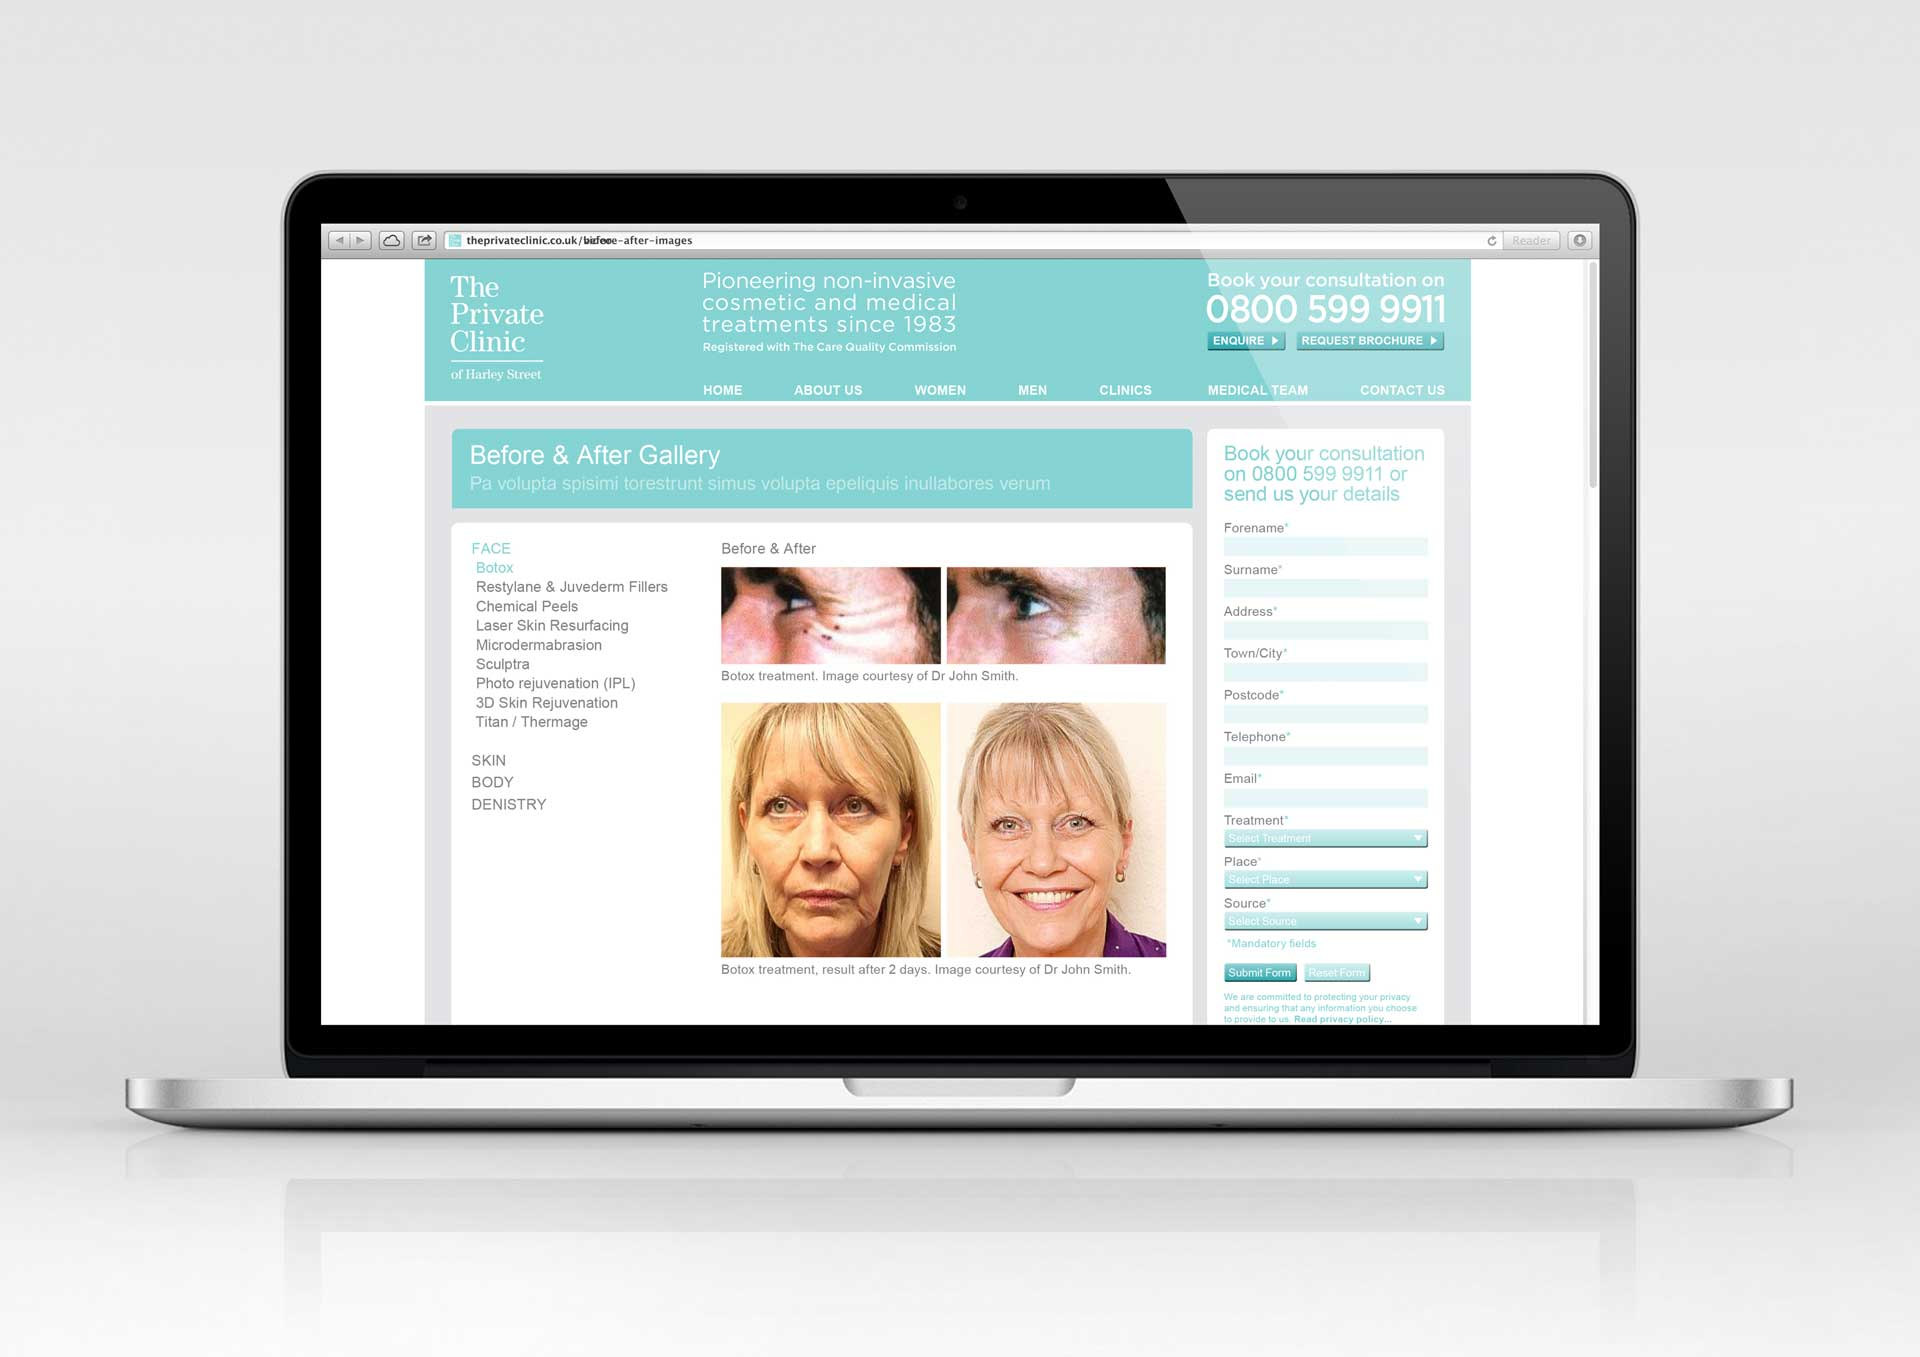 private-clinic-harley-street-website-2